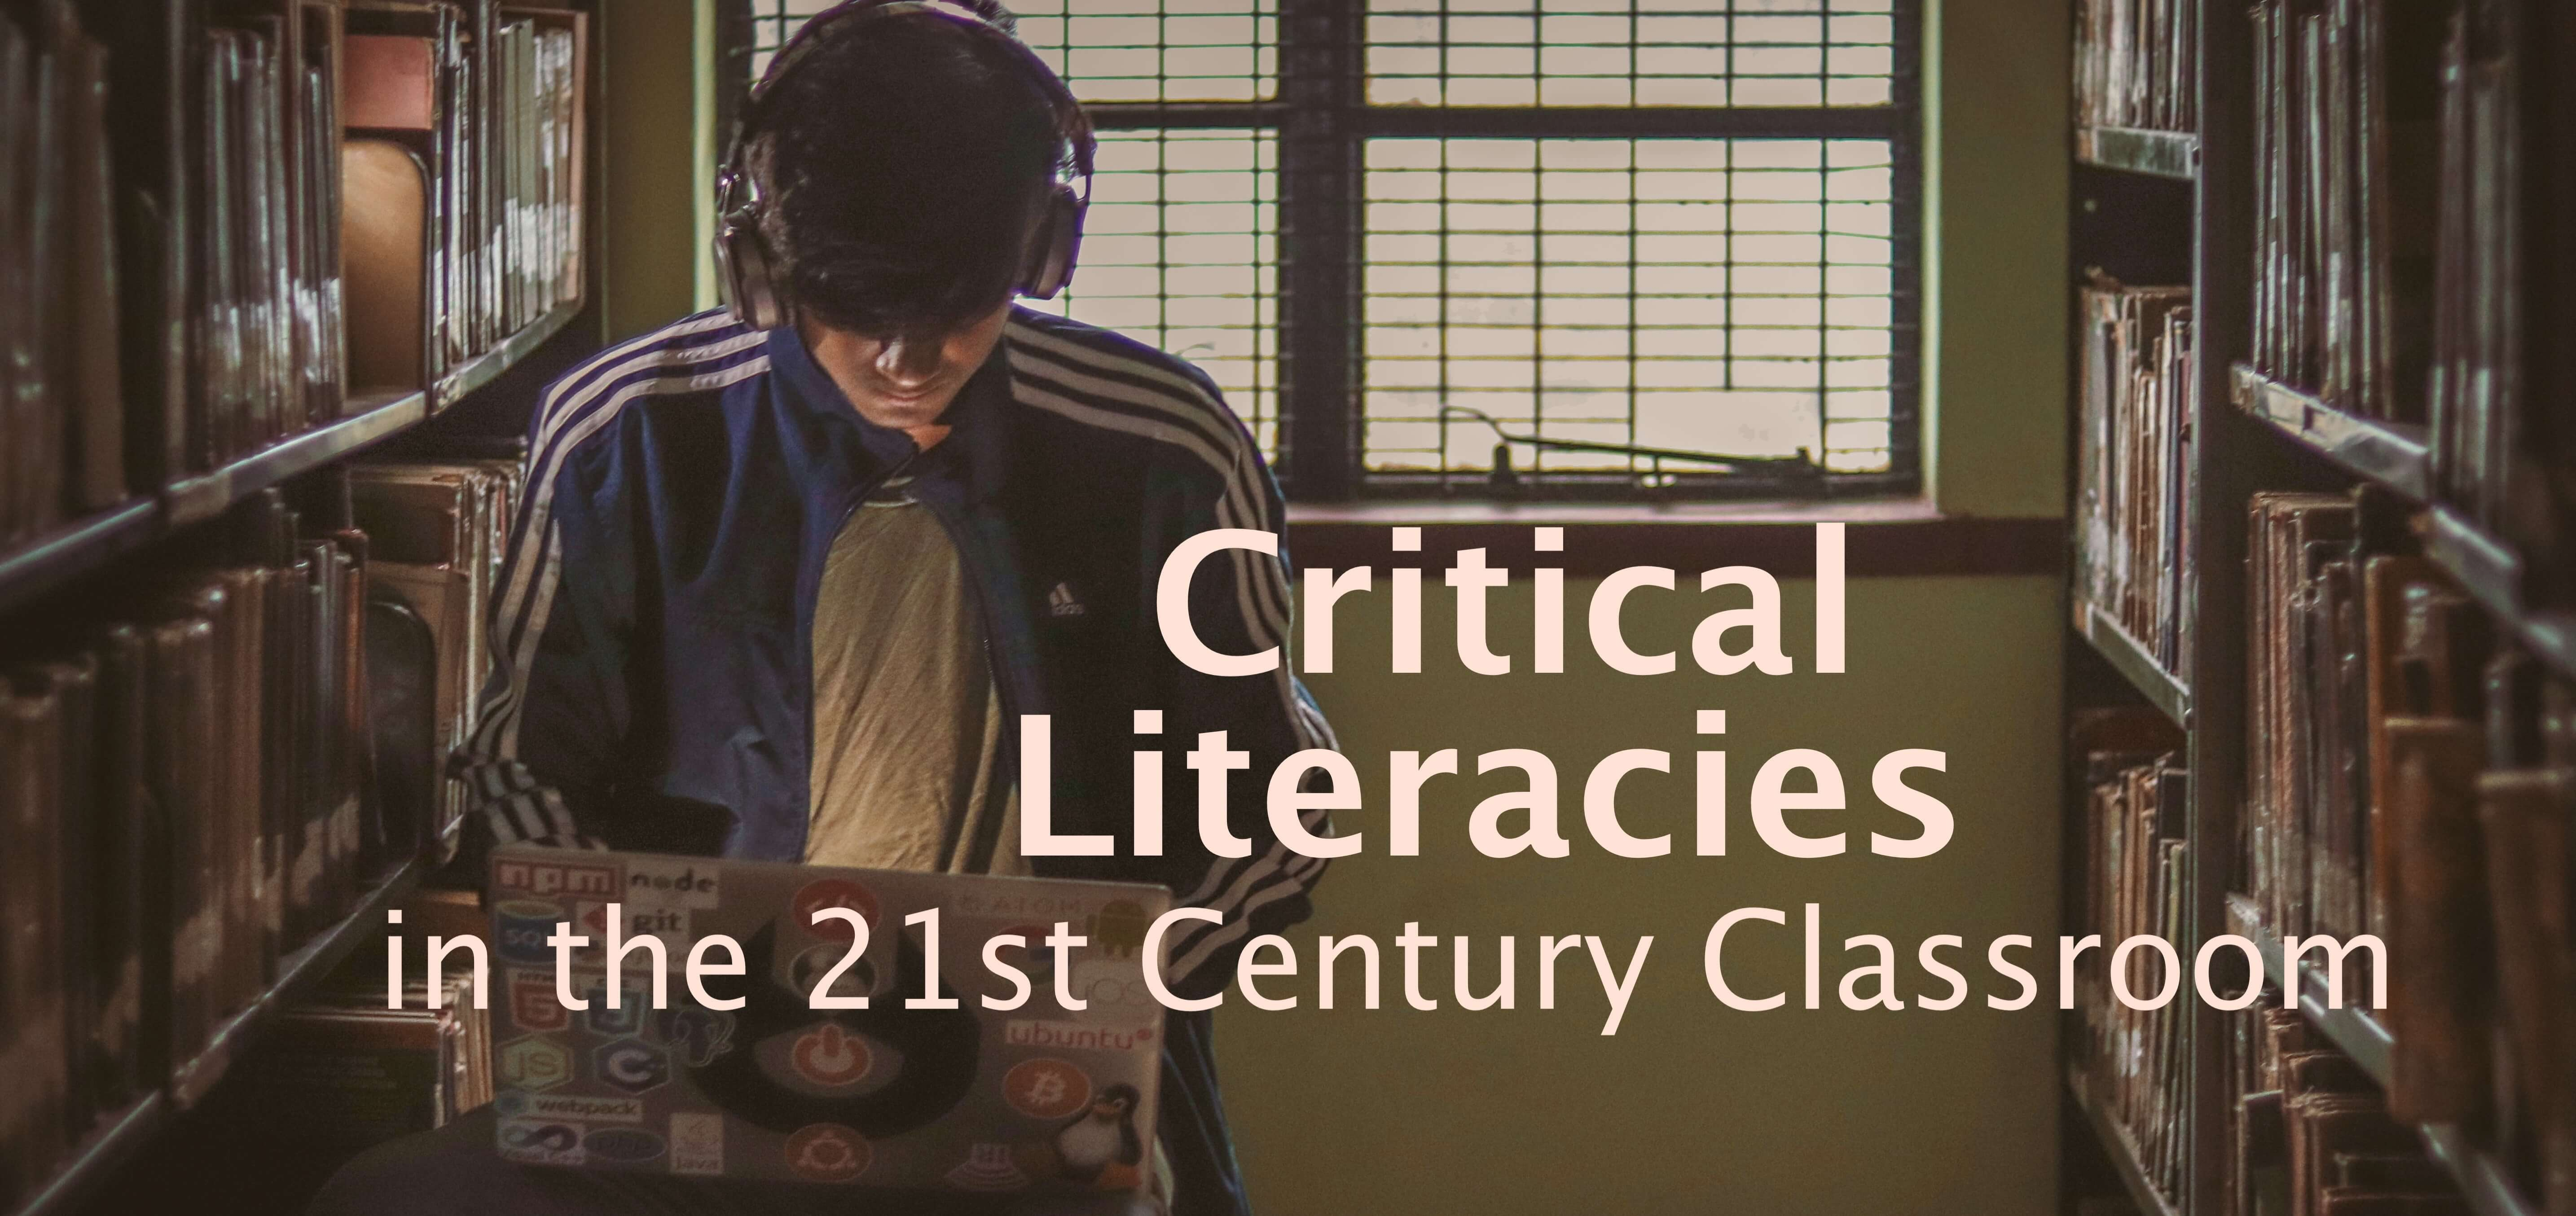 Young man wearing headphones sitting between library shelves looking down at laptop, with superimposed text: Critical Literacies in the 21st Century Classroom